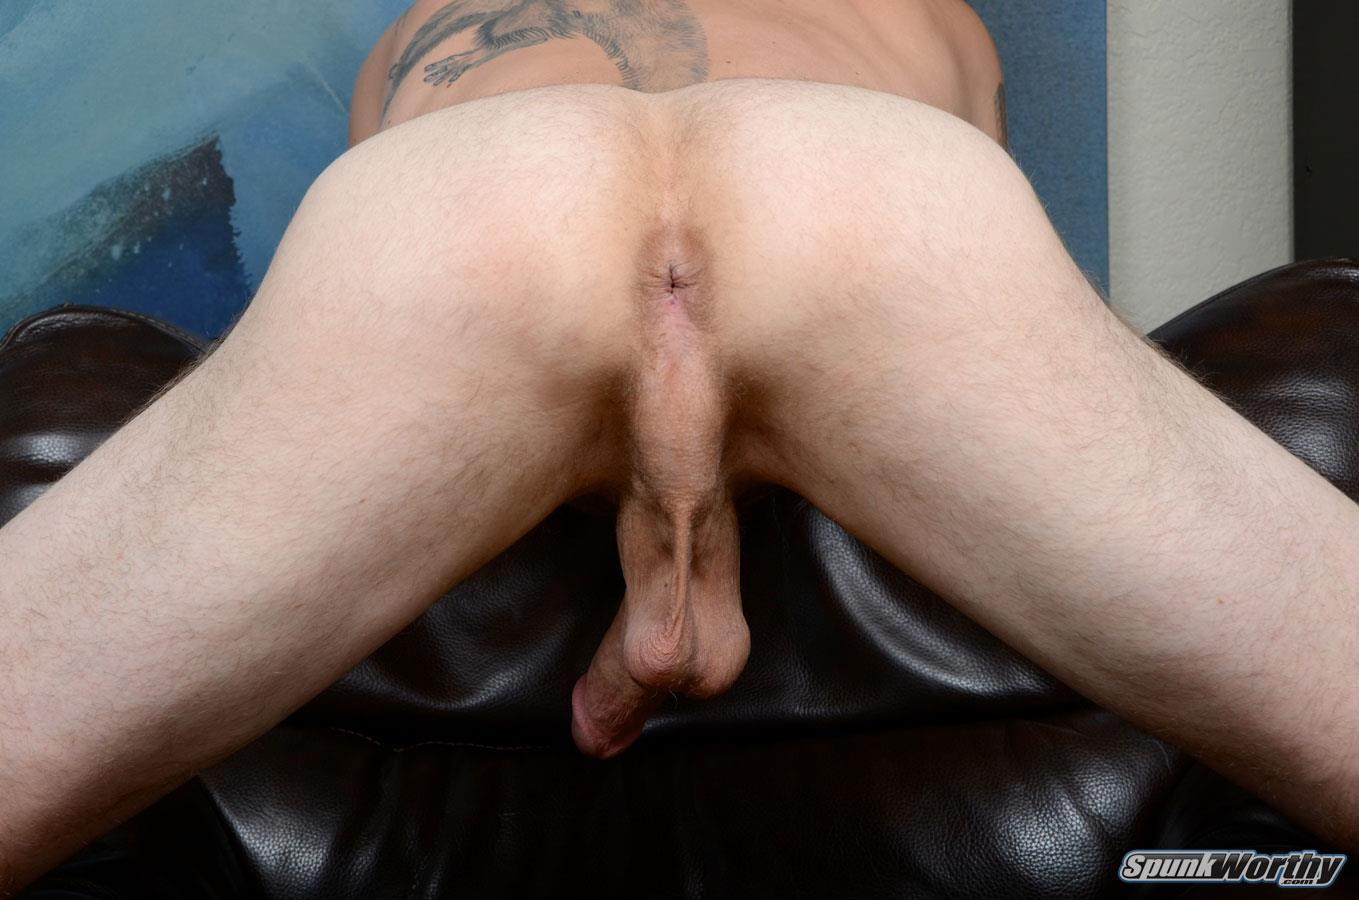 SpunkWorthy-Dane-Tatted-Marine-Masturbating-8-Inch-Cock-Amateur-Gay-Porn-11 Amateur StraightTatted Marine Jerking His Big 9